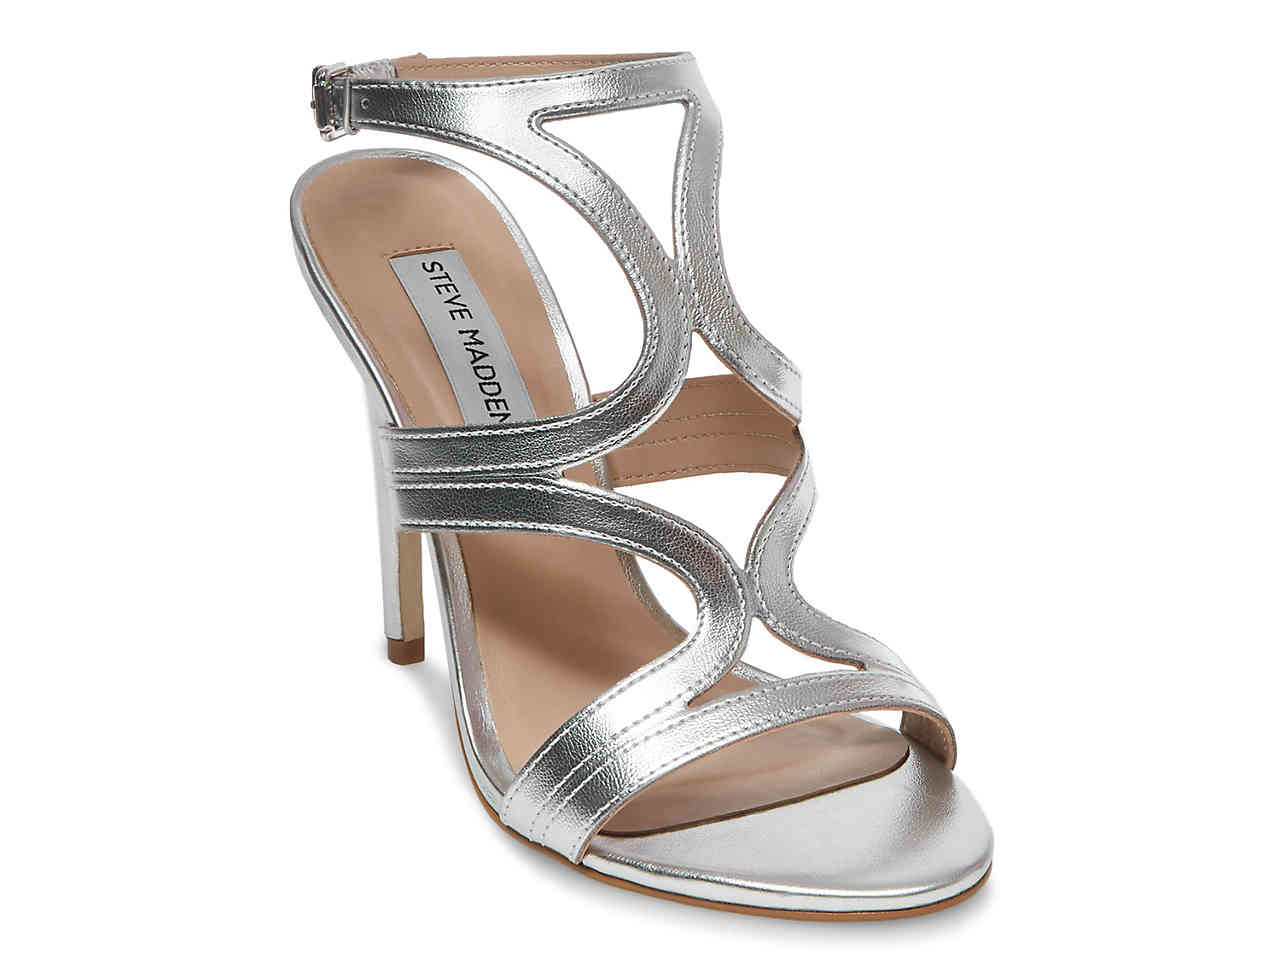 picture-of-lizzie-mcguire-prom-shoes-photo1